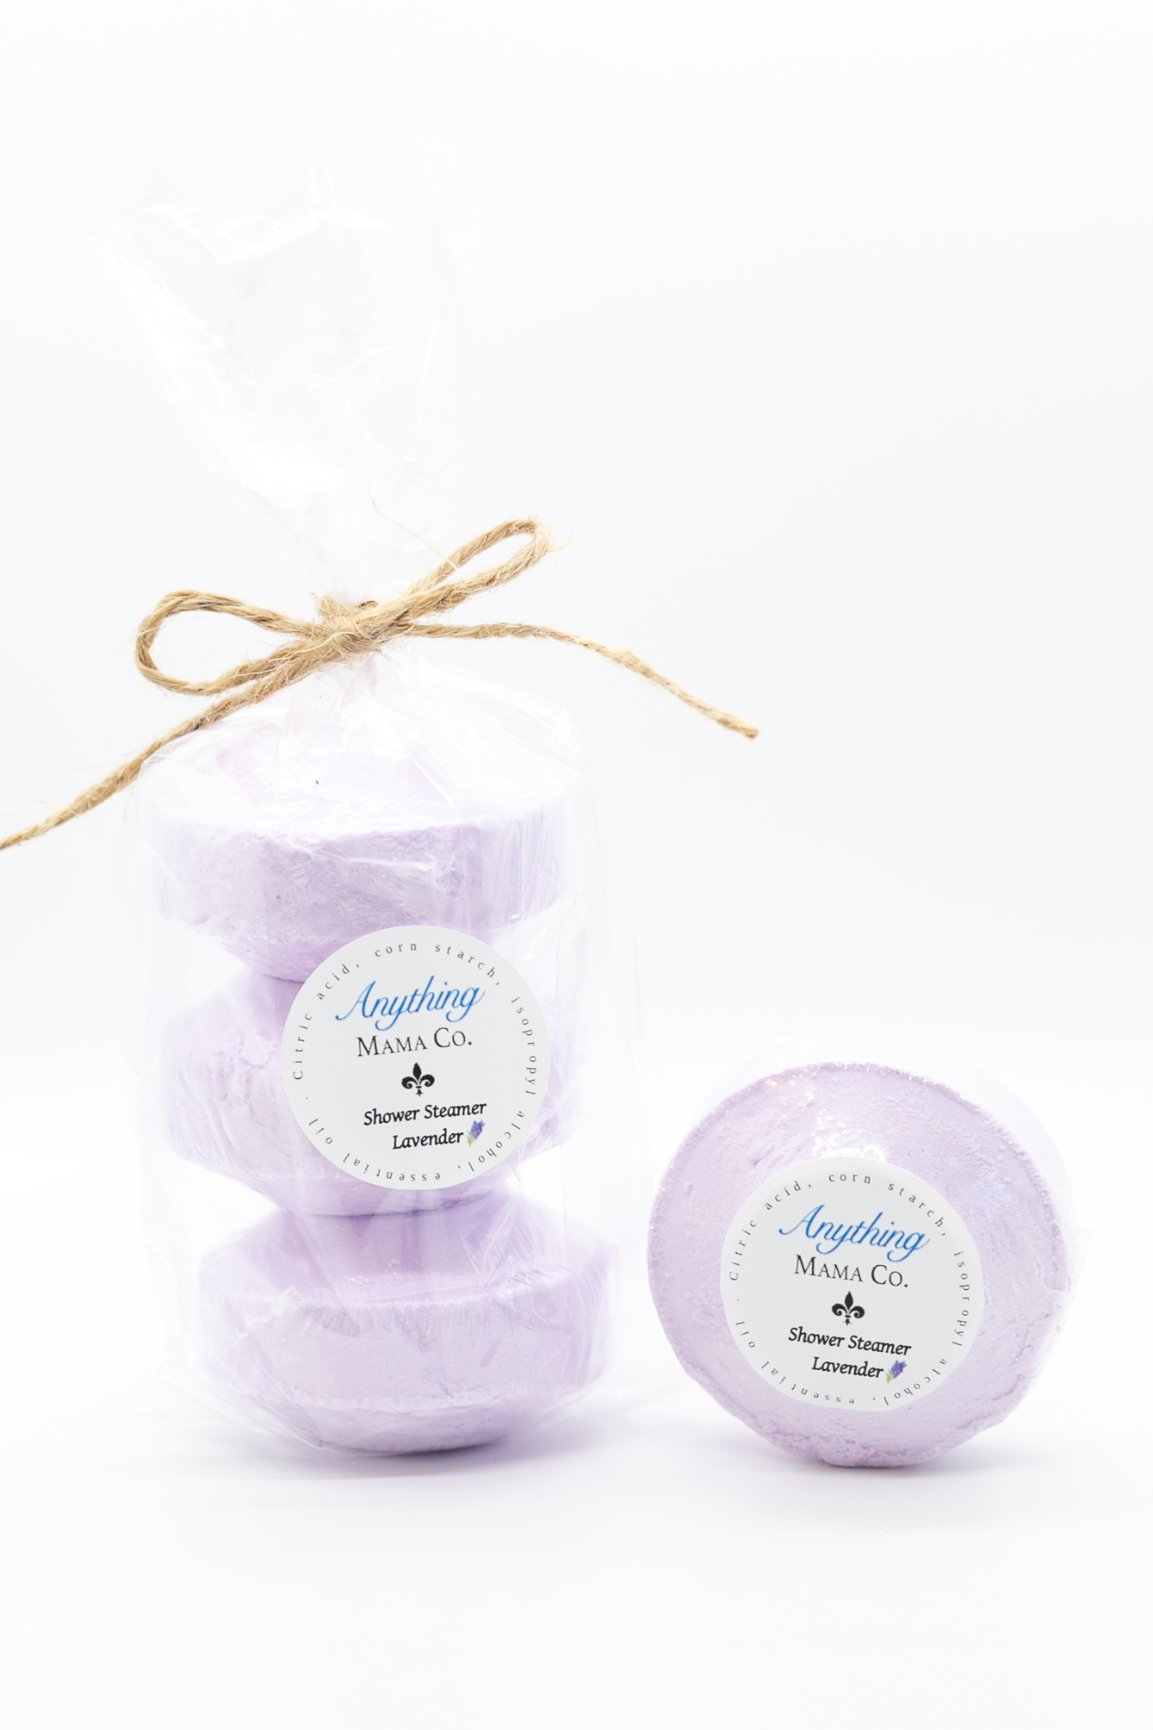 Lavender Shower Steamer 3 oz. (each)